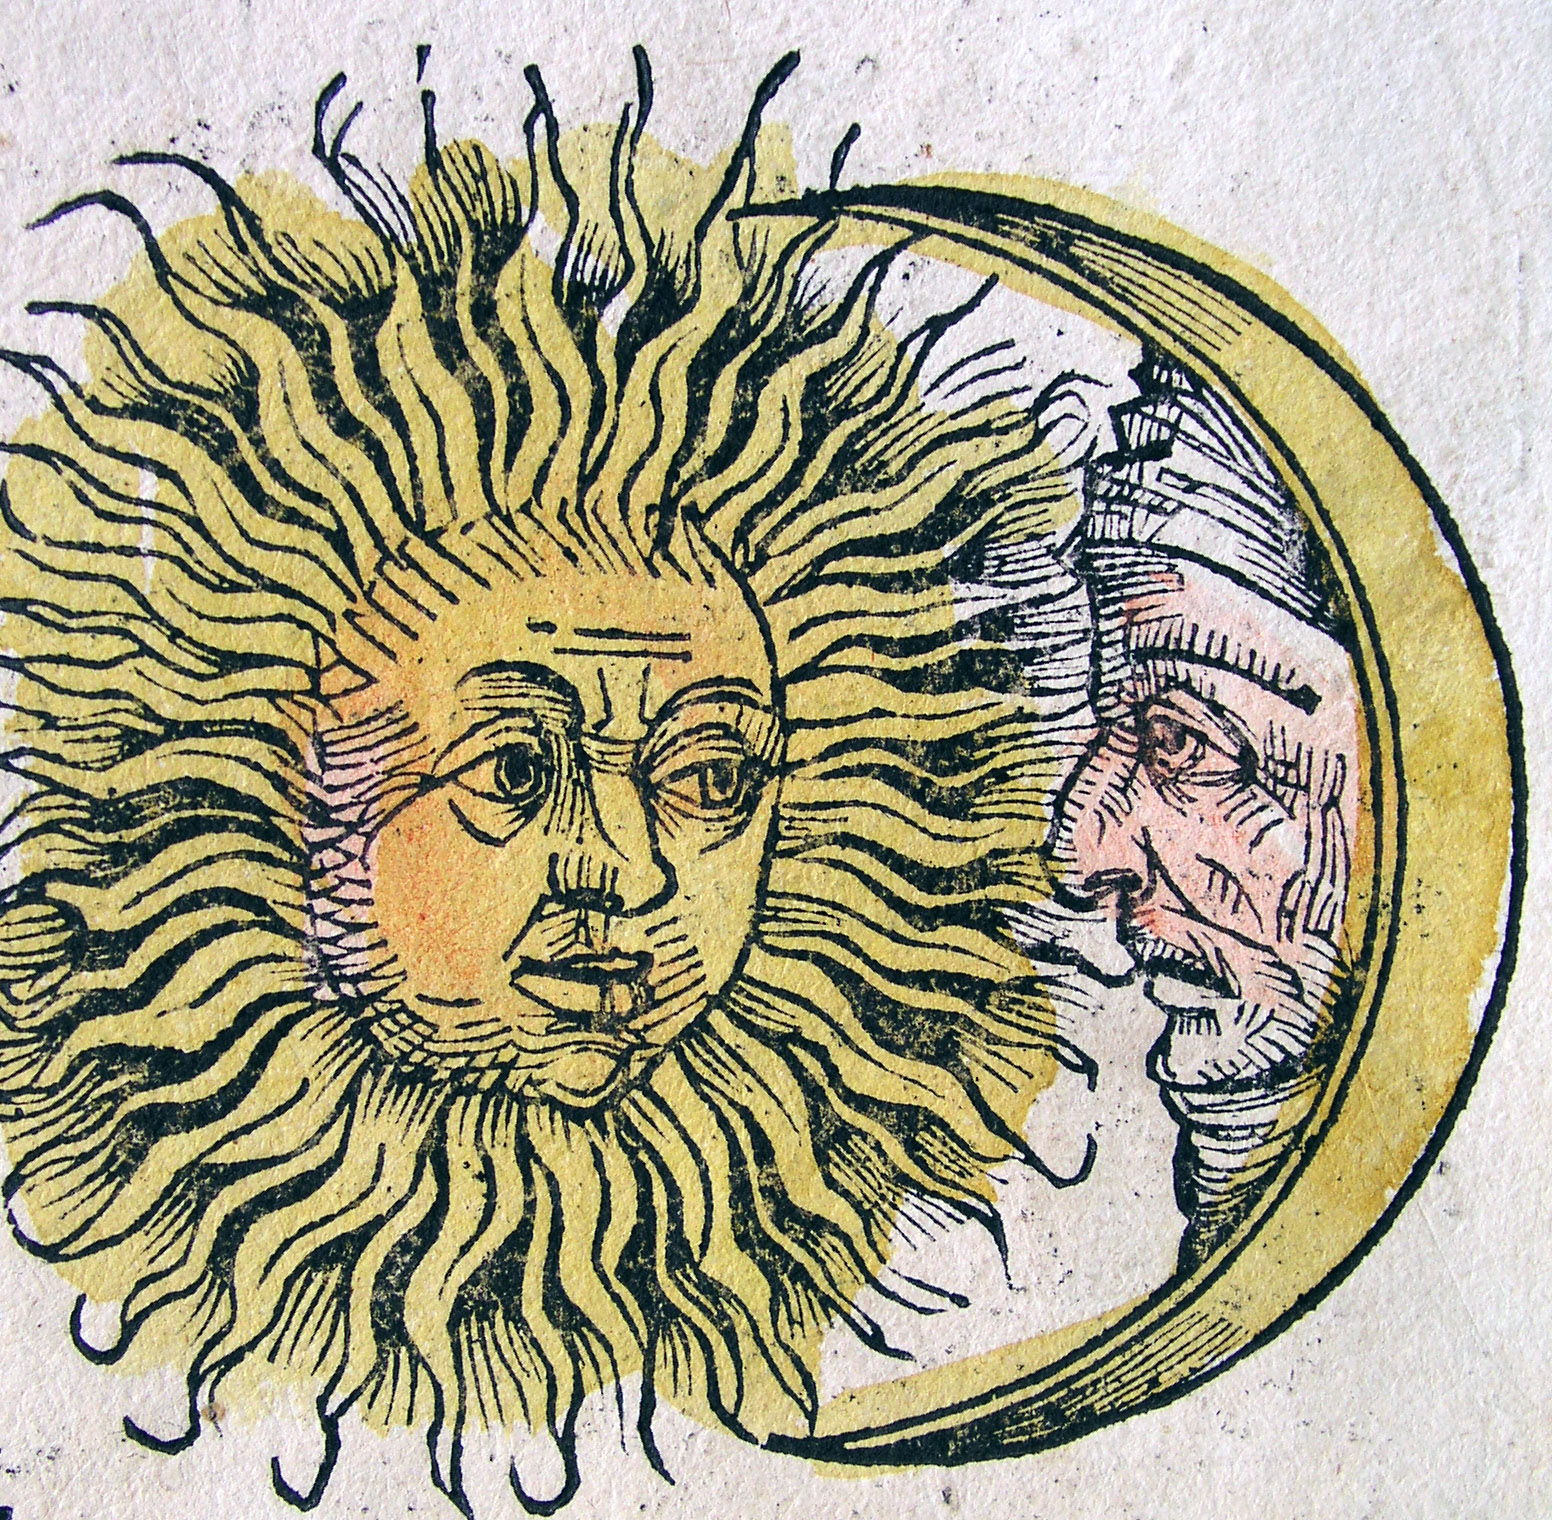 old world artistic rendering of the sun and moon